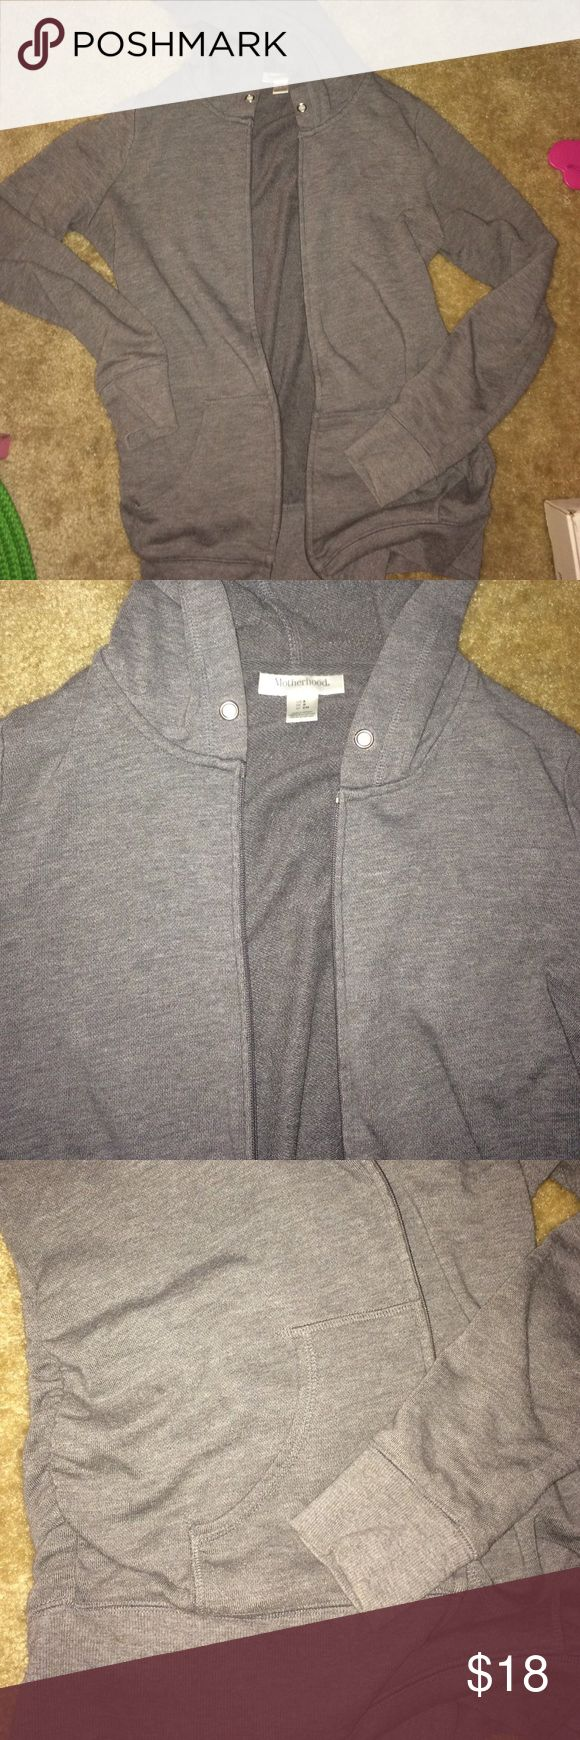 Heather Gray Maternity Hoodie zip up Gray motherhood maternity zip up hoodie. Fits more like xs but is a small. If you have shorter arms it'll work as a small. Didnt for me. Some light pilling and no string threaded through hood. Side ruching to allow belly growth. Motherhood Maternity Sweaters